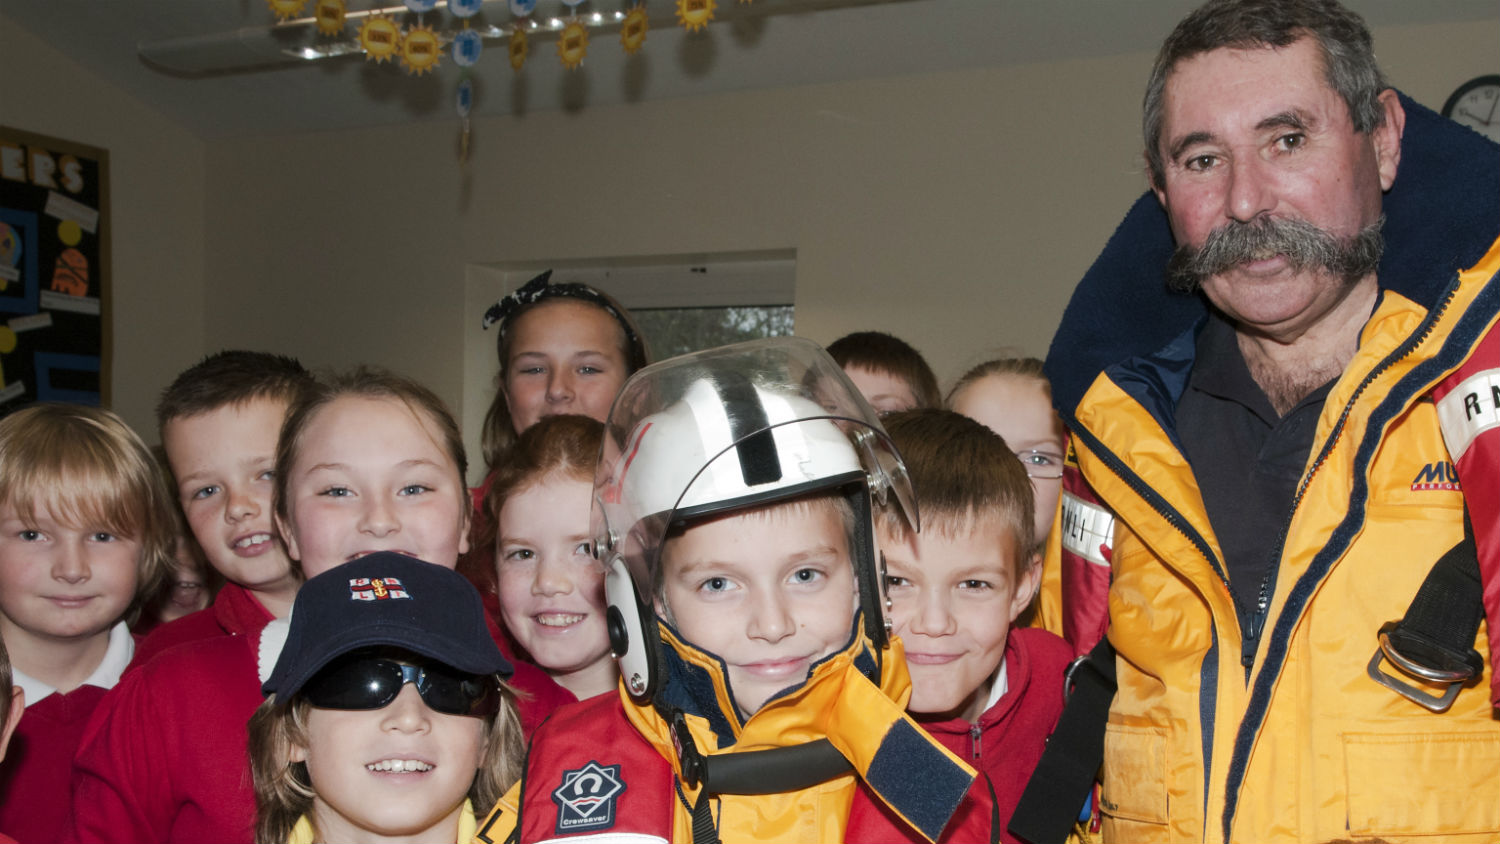 RNLI education presenter Jon Yabbesley with pupils at Pucklechurch Primary School in Bristol.